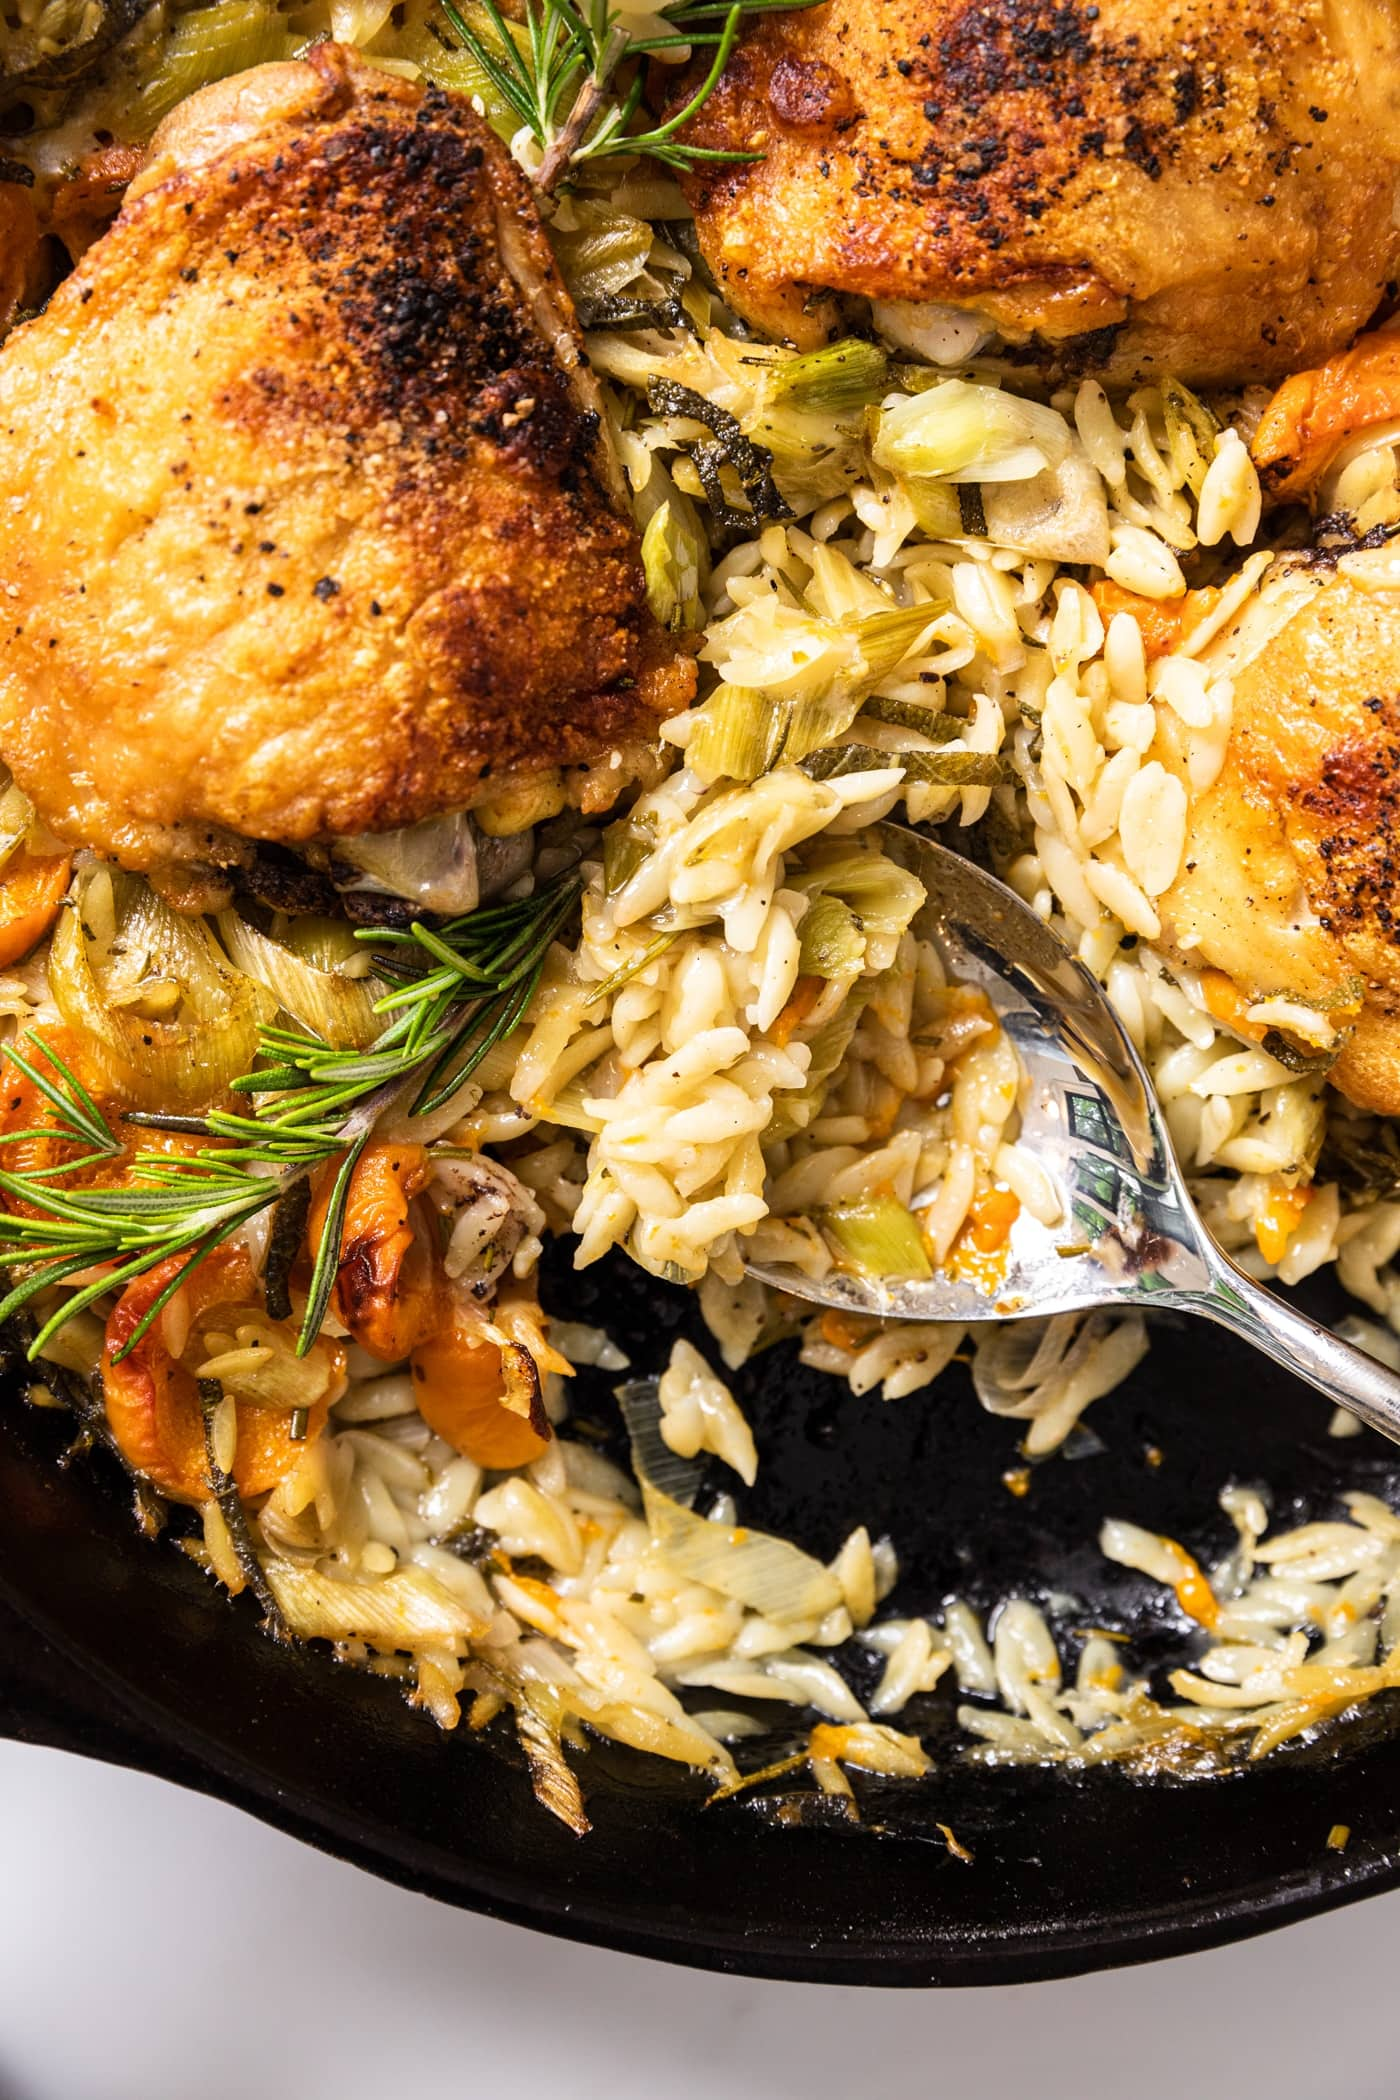 Top down view of spoon scooping out orzo from black skillet also filled with cooked chicken thighs